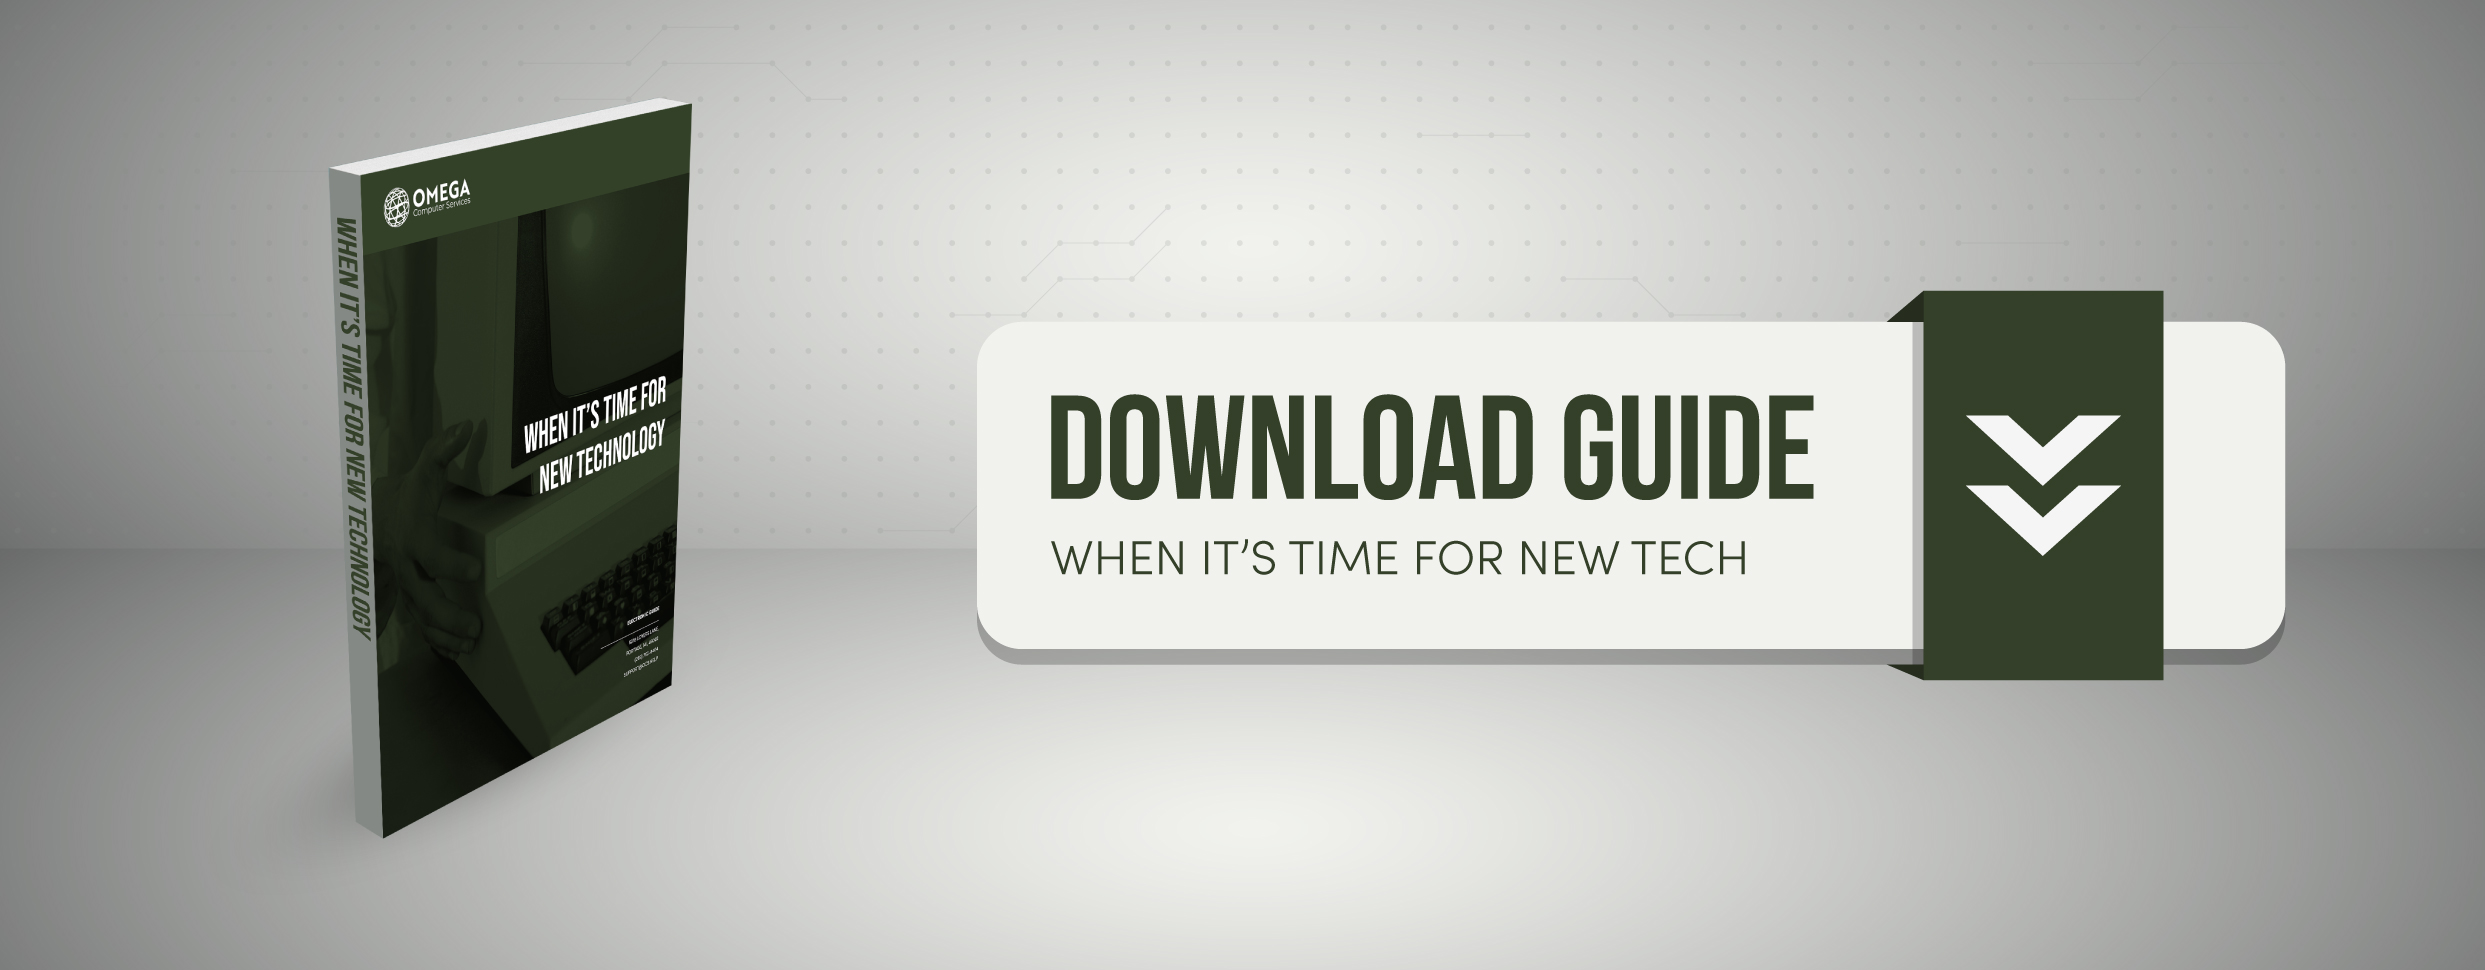 When its time for new technology guide. Business technology. Outdated technology.